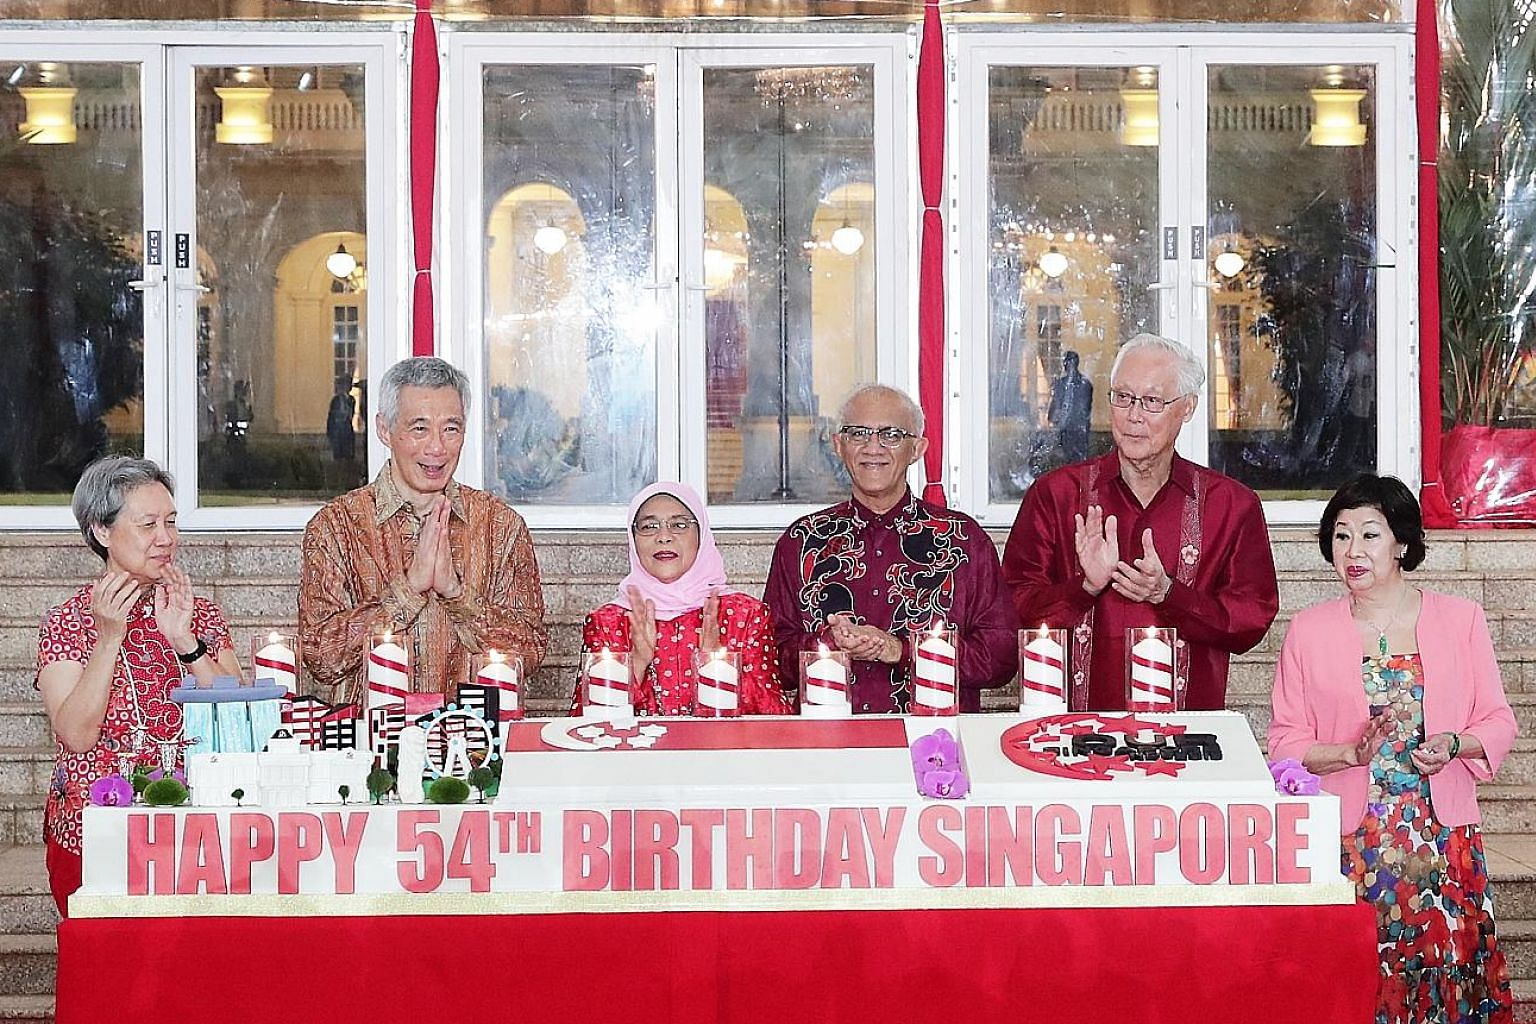 Prime Minister Lee Hsien Loong and Mrs Lee with President Halimah Yacob and her husband, Mr Mohamed Abdullah Alhabshee, as well as Emeritus Senior Minister Goh Chok Tong and Mrs Goh, at the cake-cutting ceremony during the annual National Day Recepti